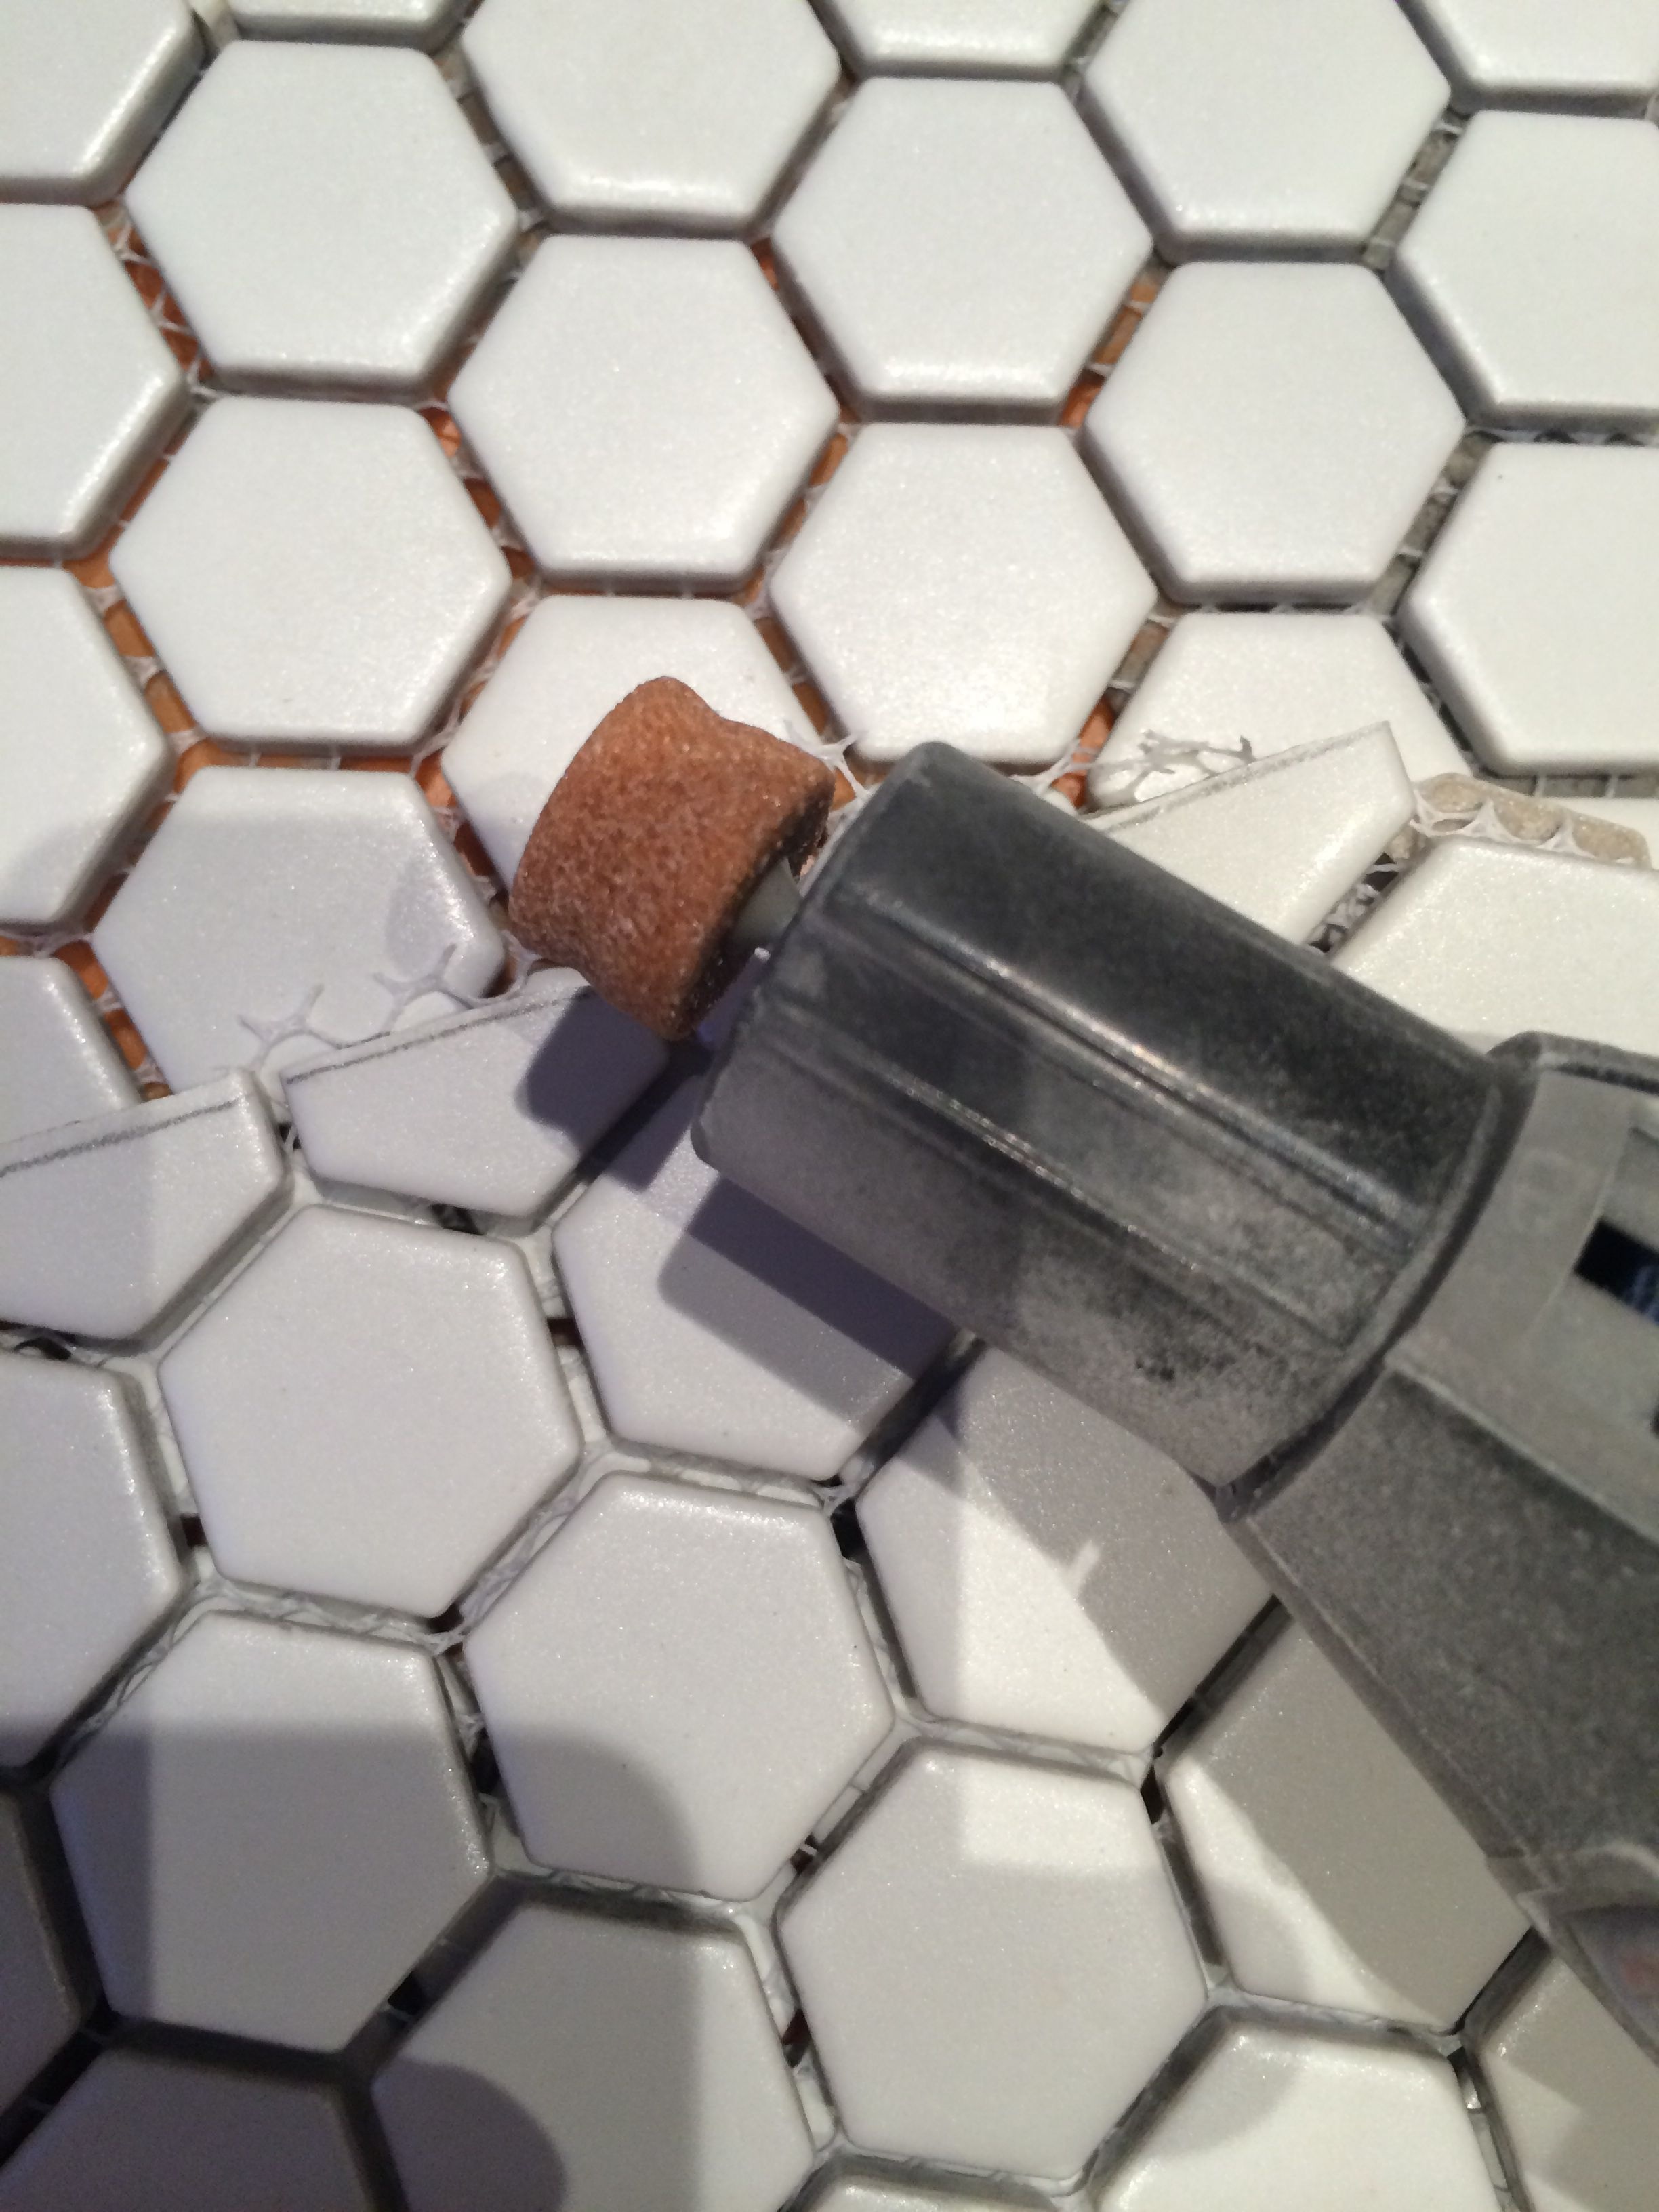 Use Dremel Grinder To Make The Mosaic Straight And Smooth Along Top Edge